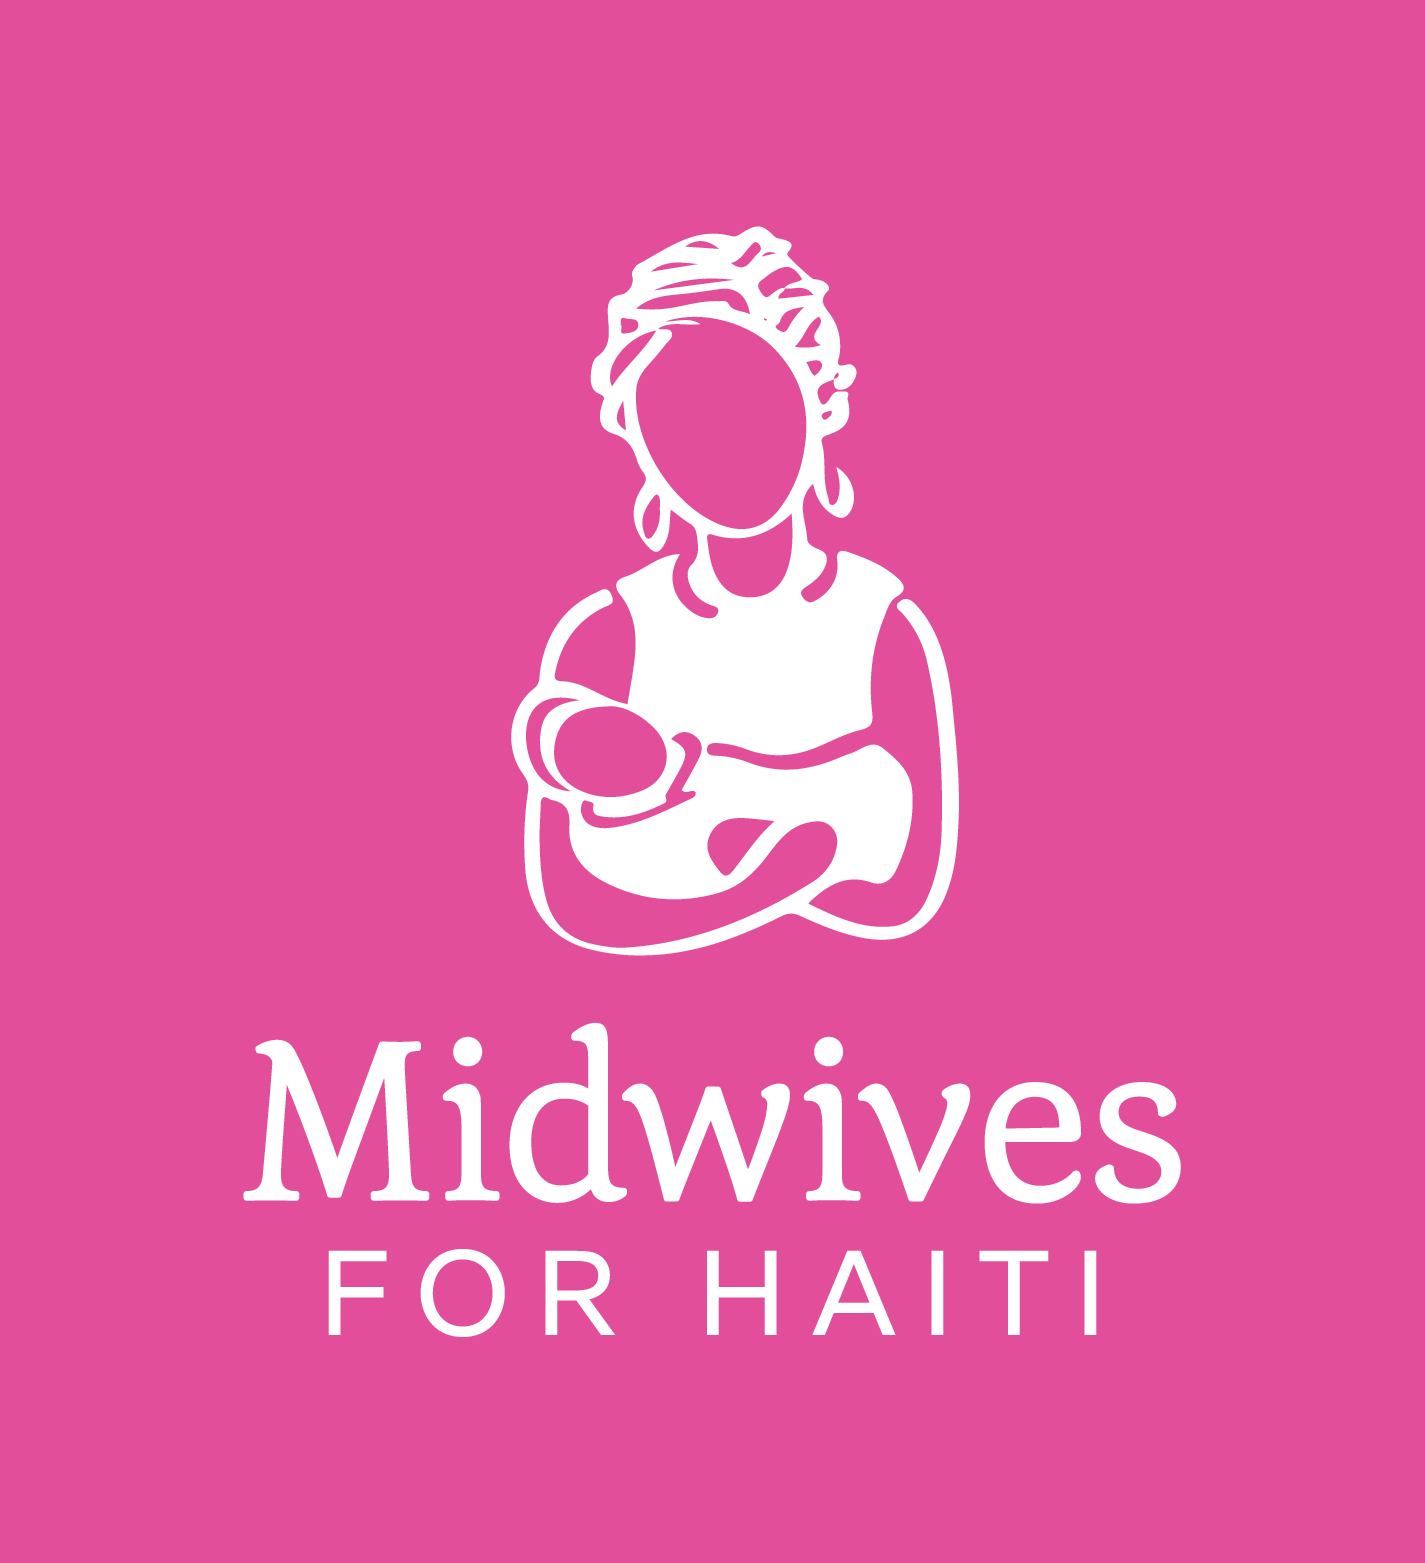 MIDWIVES FOR HAITI INC